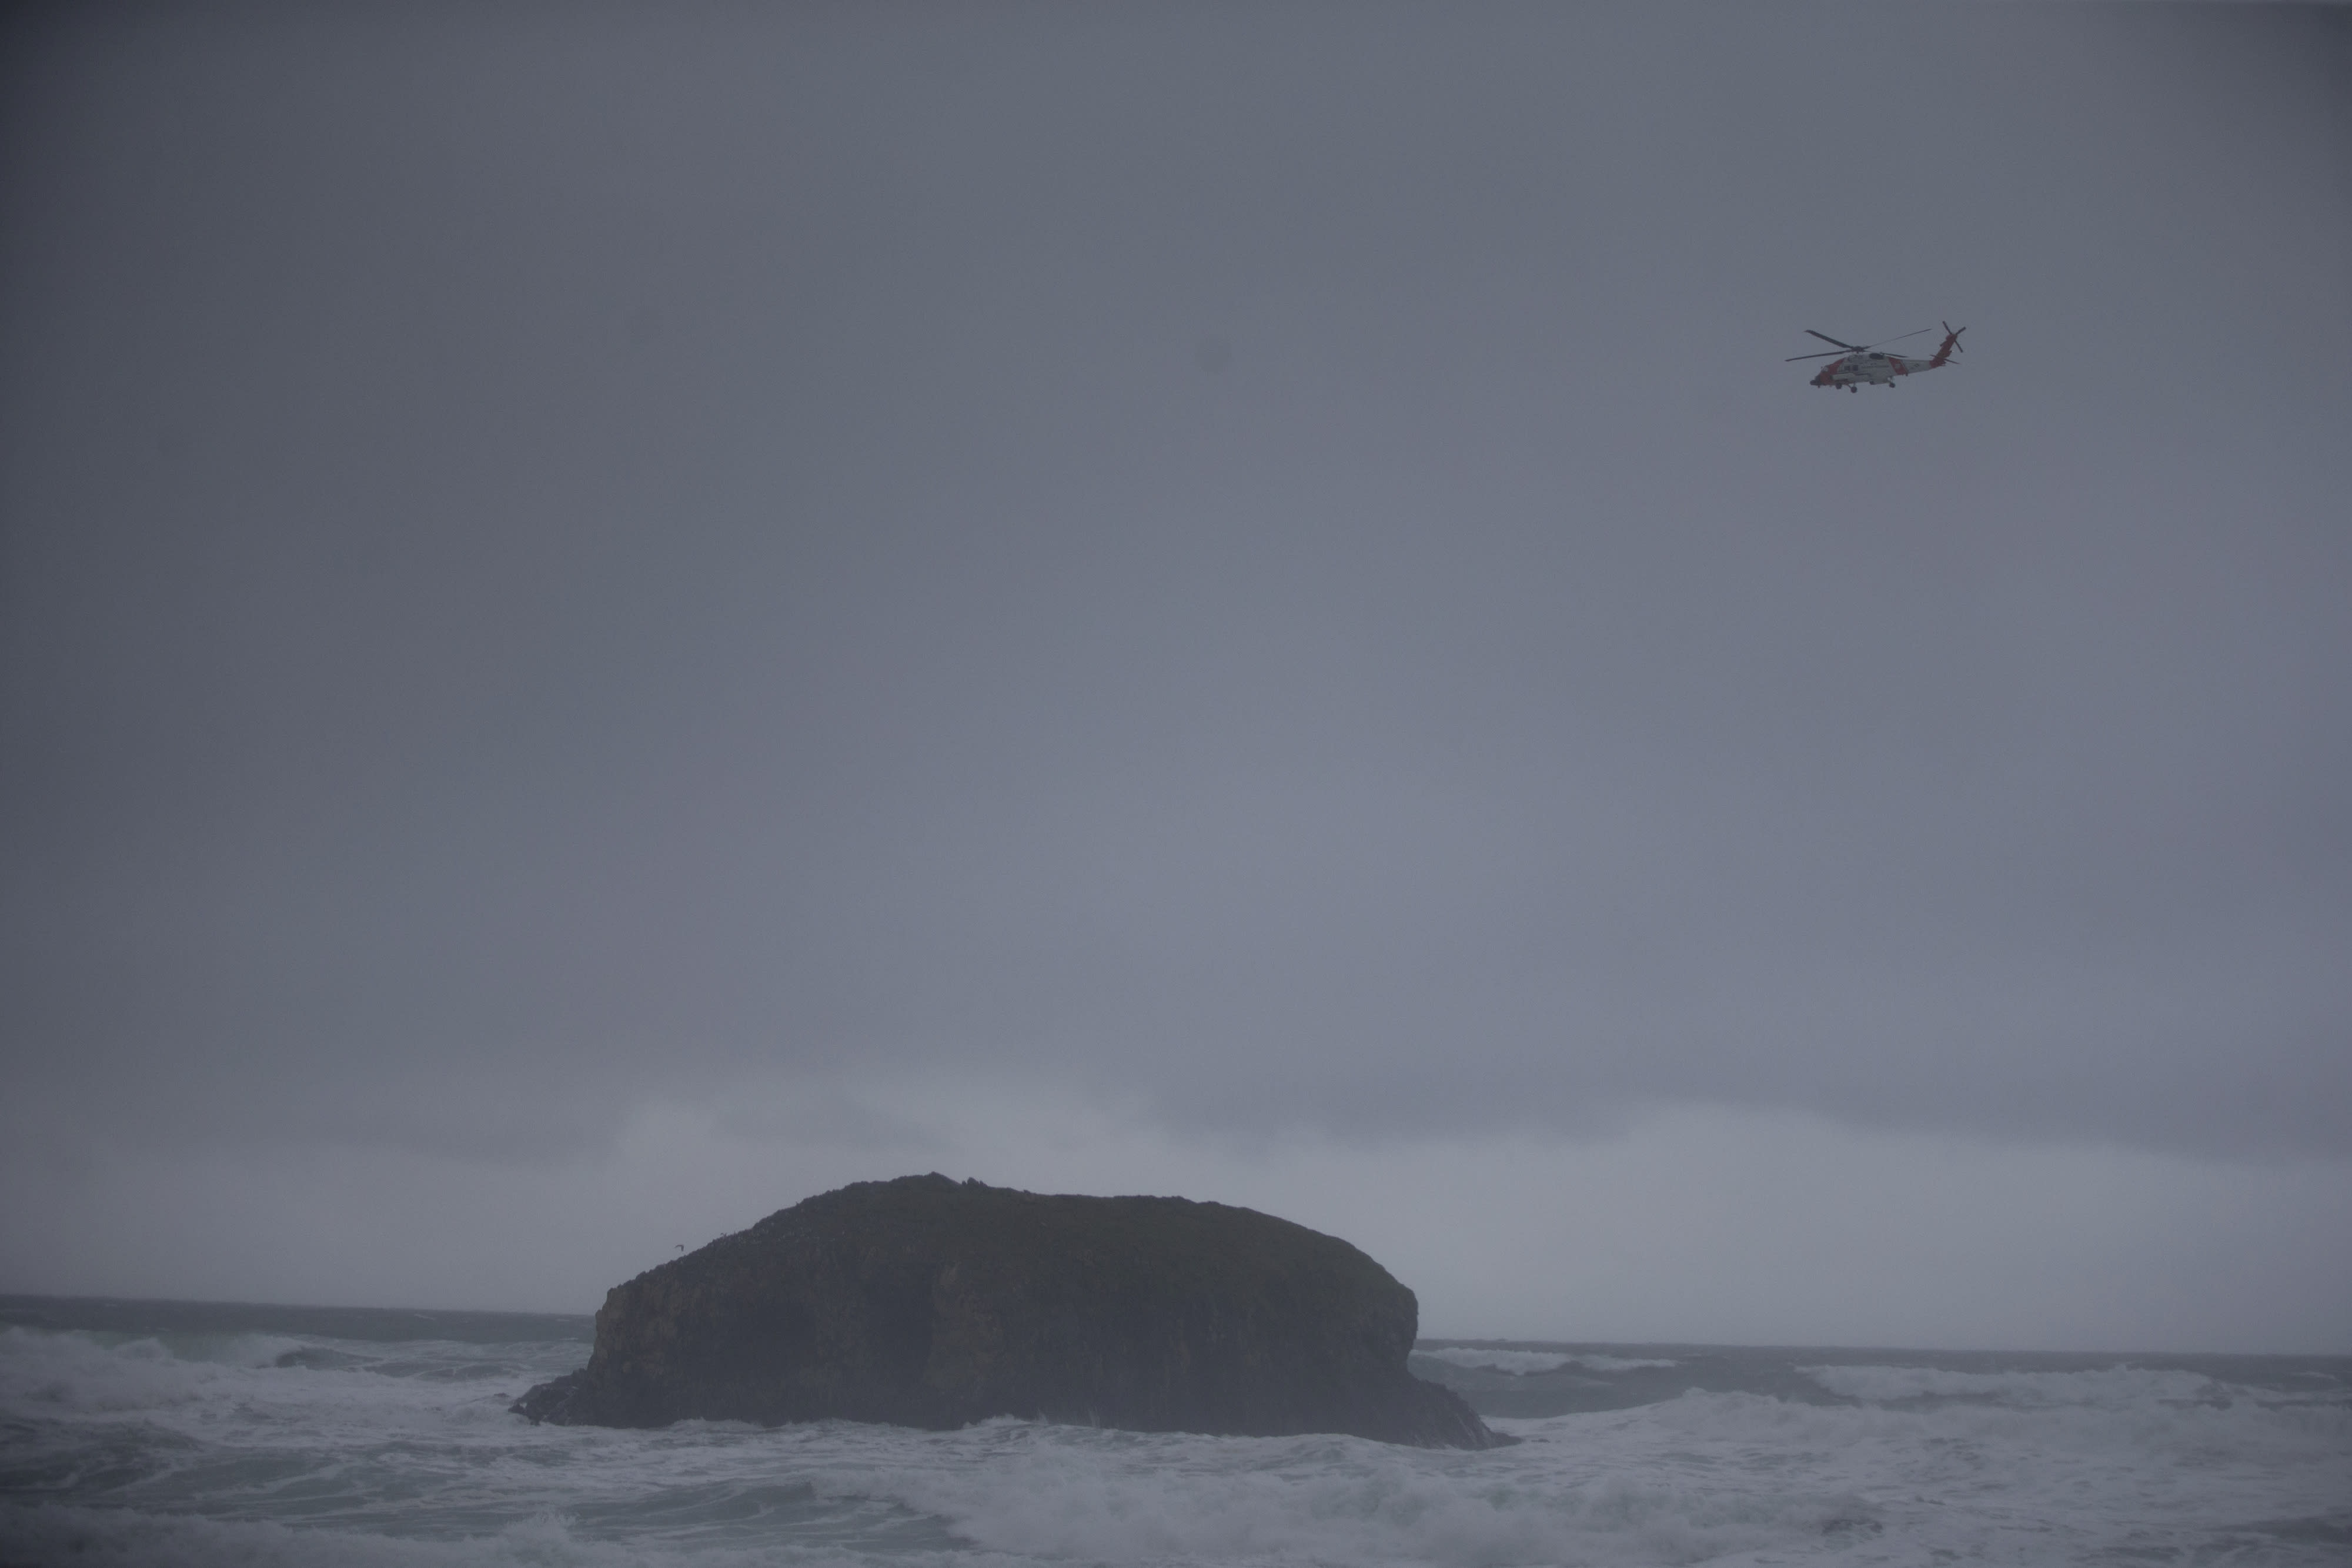 In this Sunday, Jan. 12, 2020 photo, a Coast Guard helicopter continues to search for a missing boy near Falcon Cove Beach in Clastop county, Ore. A 7-year-old girl is dead and her 4-year-old brother is missing after they and their father were swept into the ocean on the Oregon coast amid a high-surf warning. The father was holding the two children when a wave swept all three into the water Saturday, Jan. 11 in the Falcon Cove area, near the small coastal community of Cannon Beach, authorities said. (Mark Graves/The Oregonian via AP)